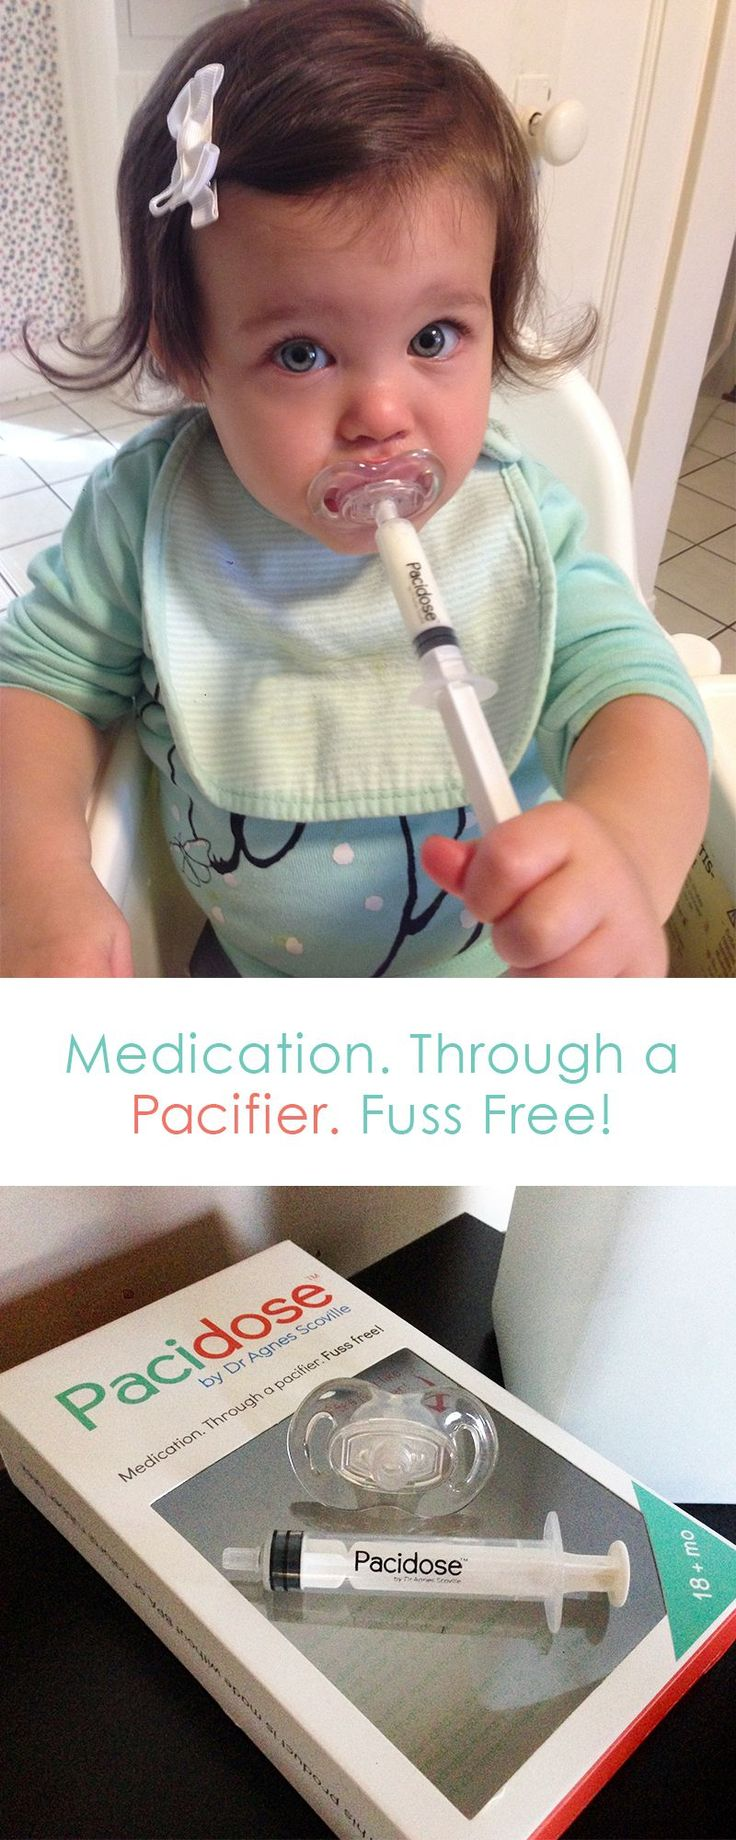 #Pacidose looks and feels just like a #pacifier and prevents wasted #medicine, all while keeping your #baby #healthy.